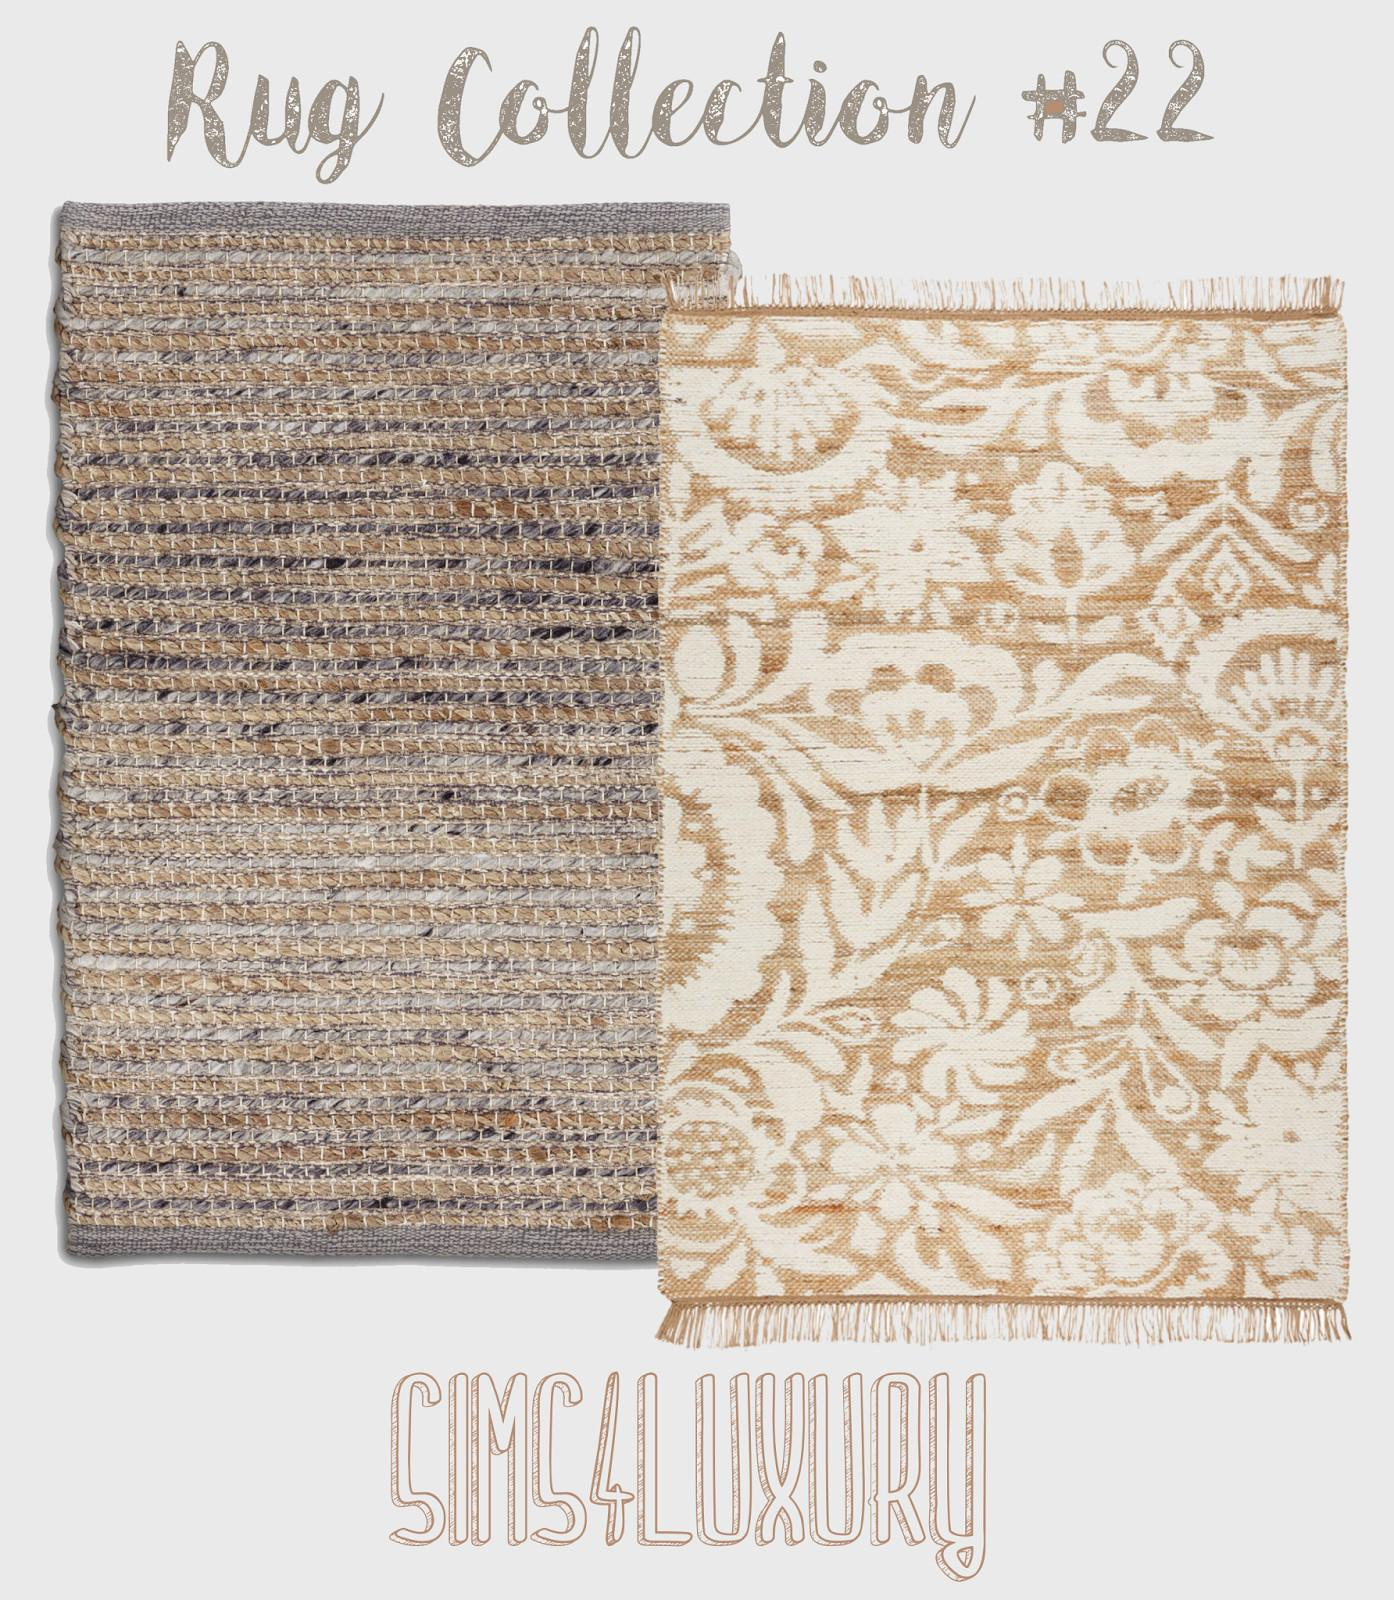 Rug Collection Sims4luxury